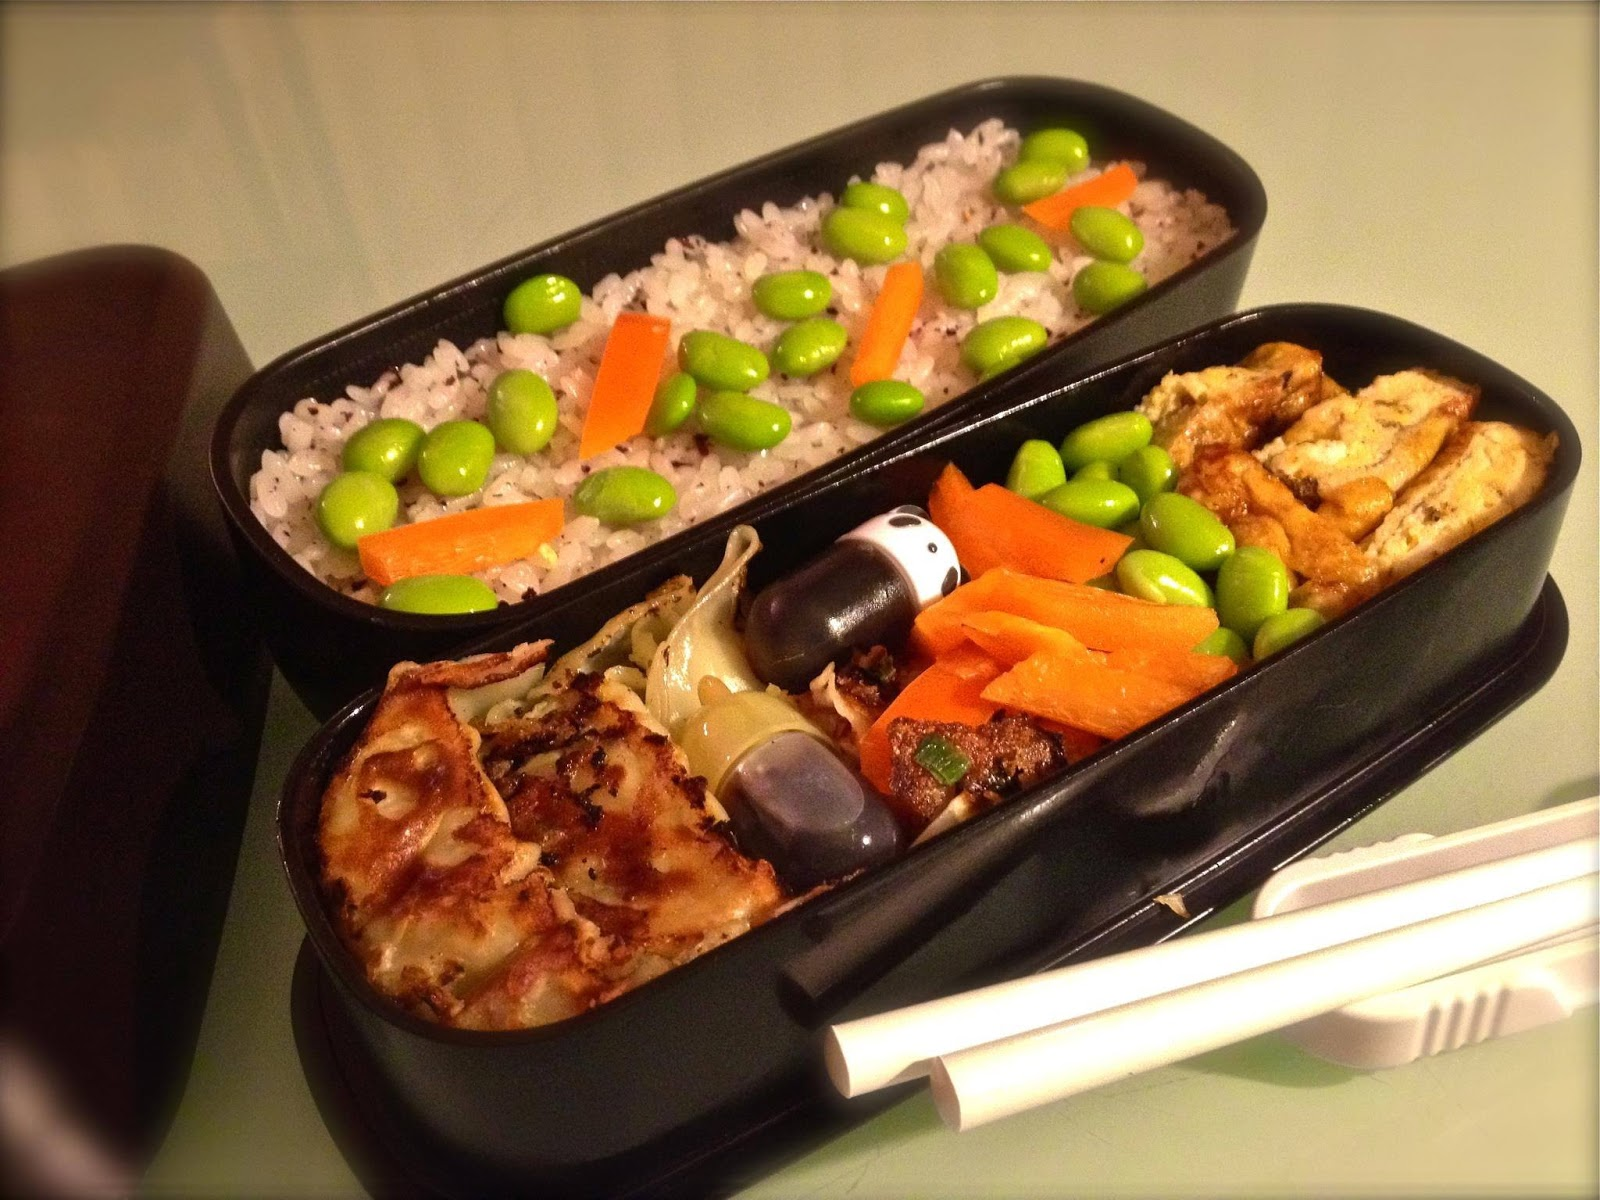 Lunch Box Isotherme Nature Et Decouverte Life Ki Michèle Stocco Dolder 寿司以外の料理お弁当 Le Bento De